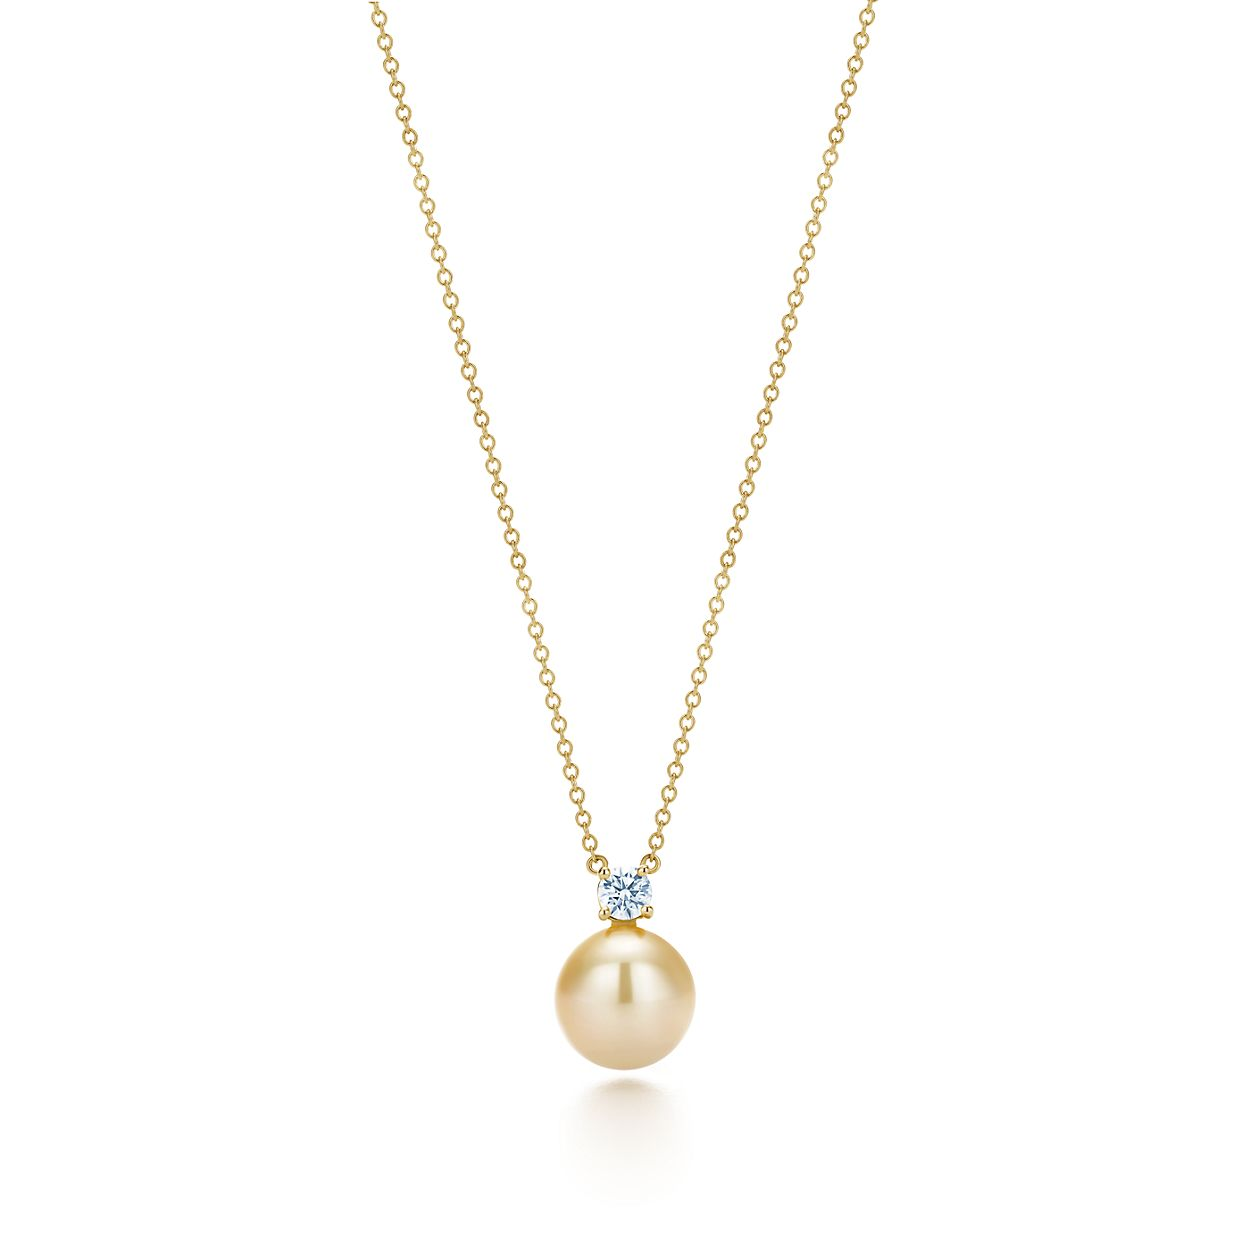 Tiffany south sea pearl pendant in 18k gold with diamonds tiffany tiffany south seapearl pendant aloadofball Images